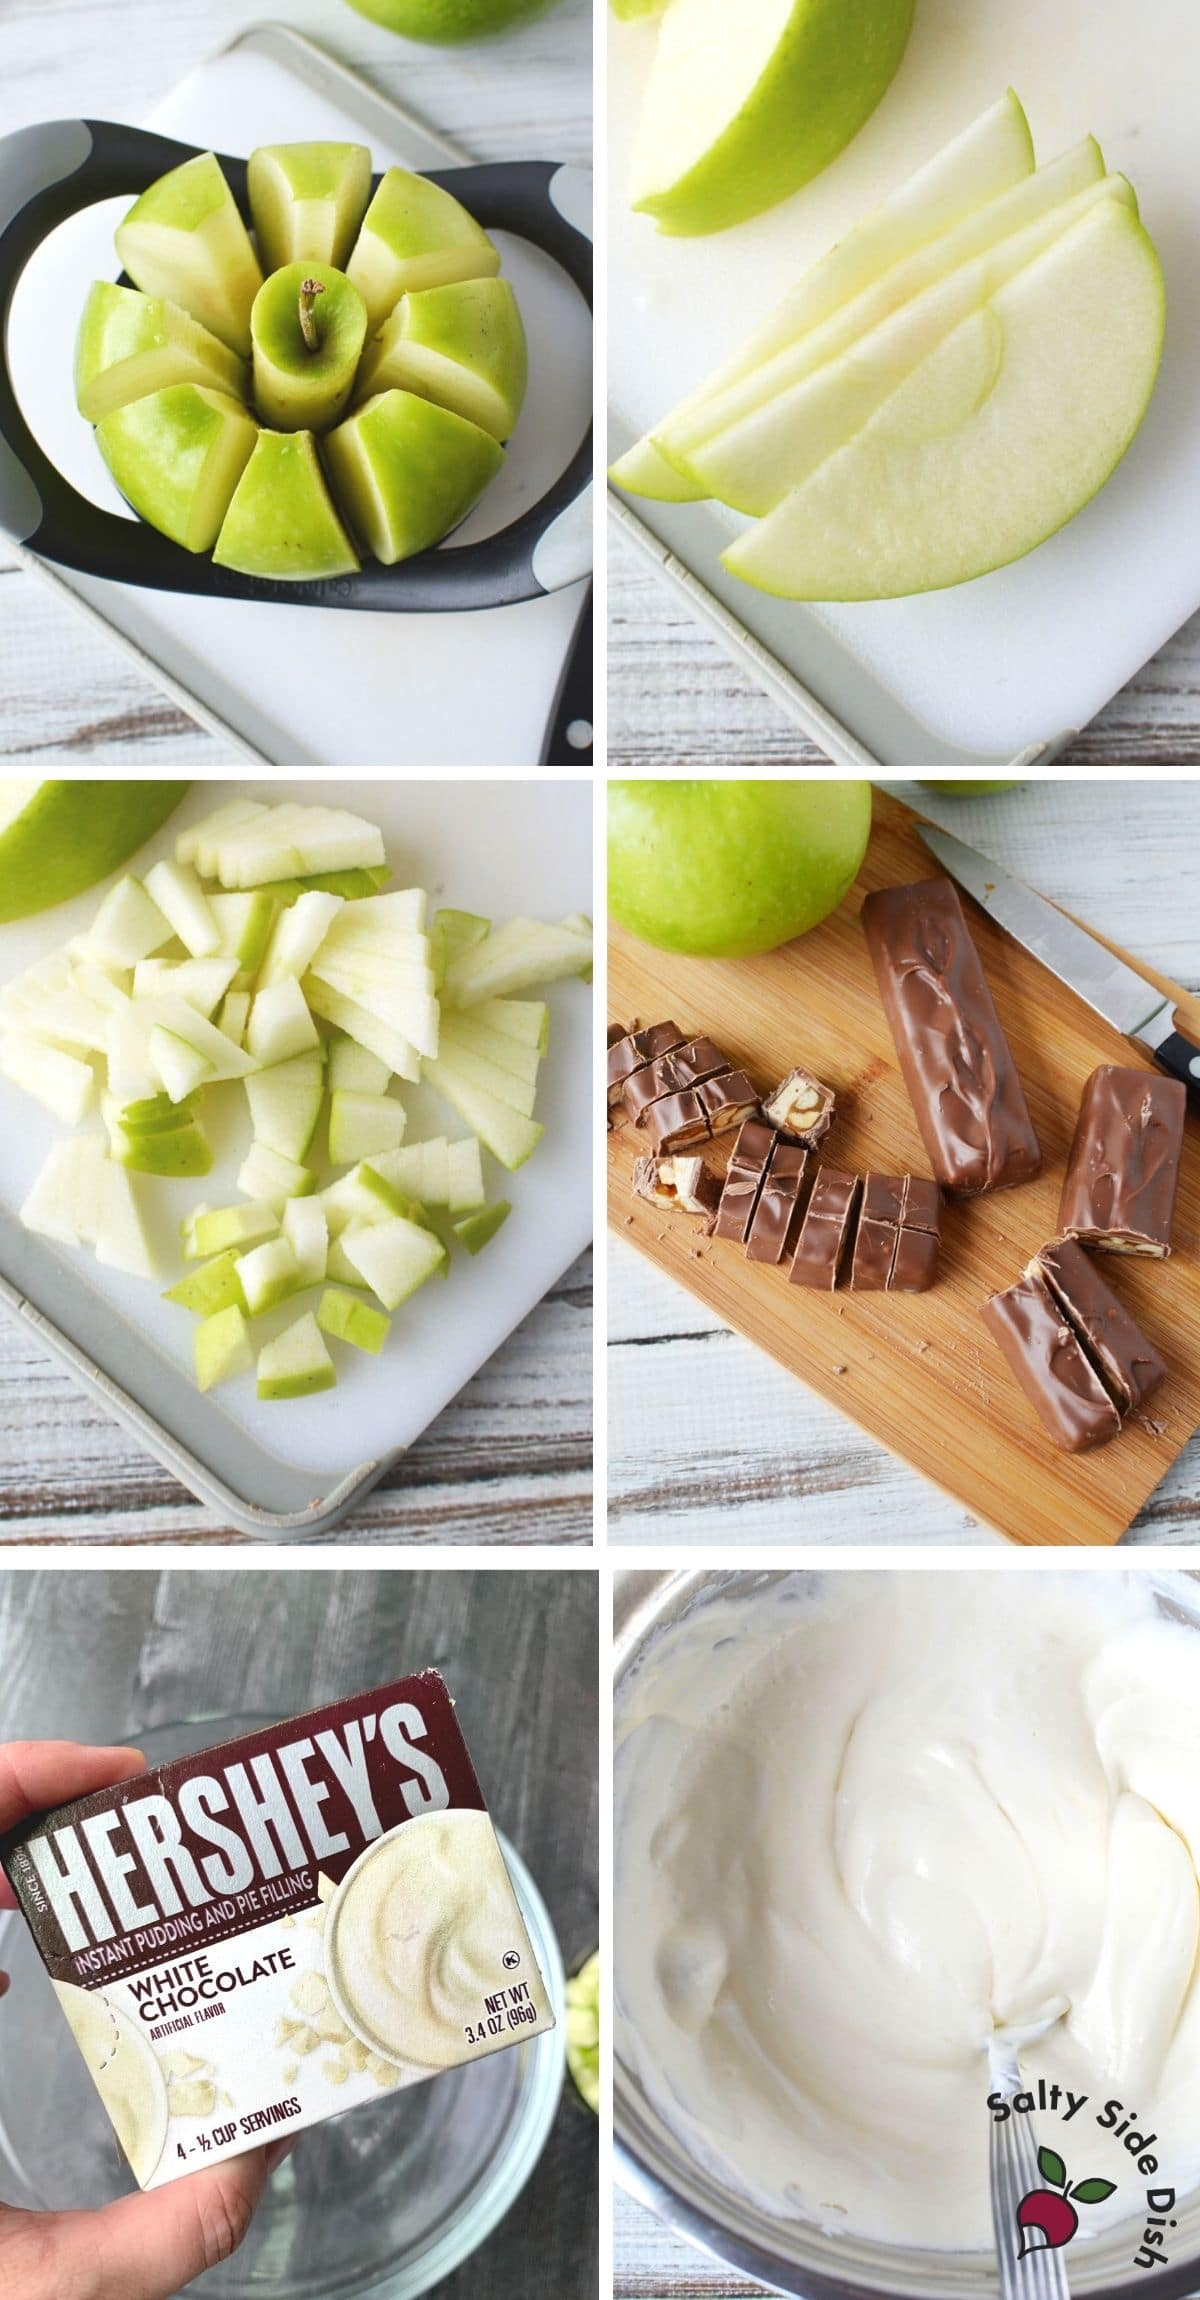 snickers salad with apple being cut up, candy bar being cut up and box of pudding being made